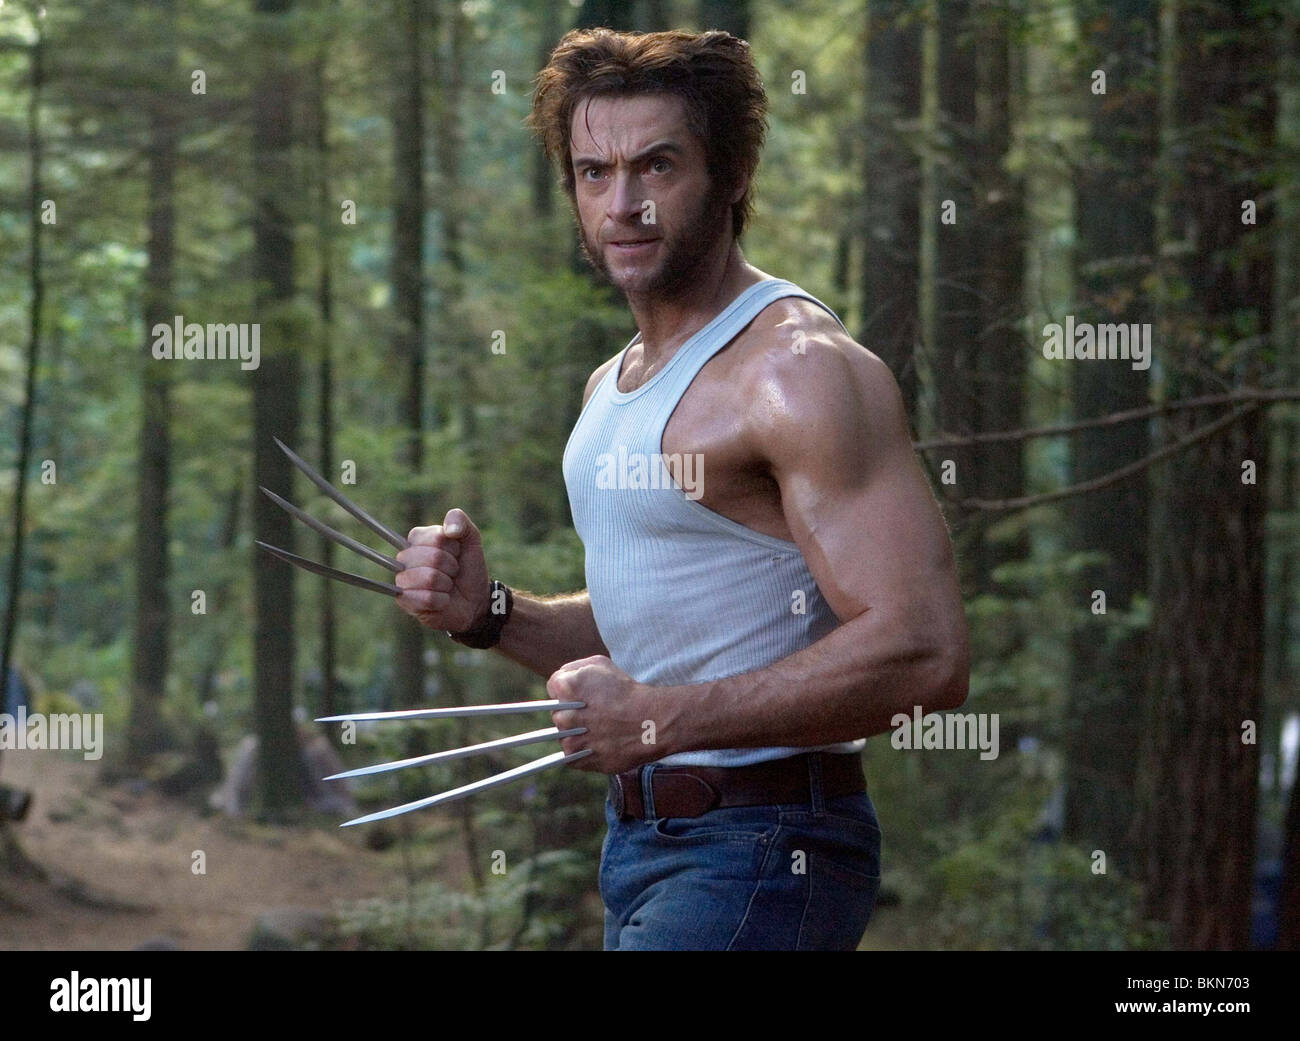 X-MEN: THE LAST STAND (2006) X3 (ALT) HUGH JACKMAN, WOLVERINE XLS 001-15 - Stock Image